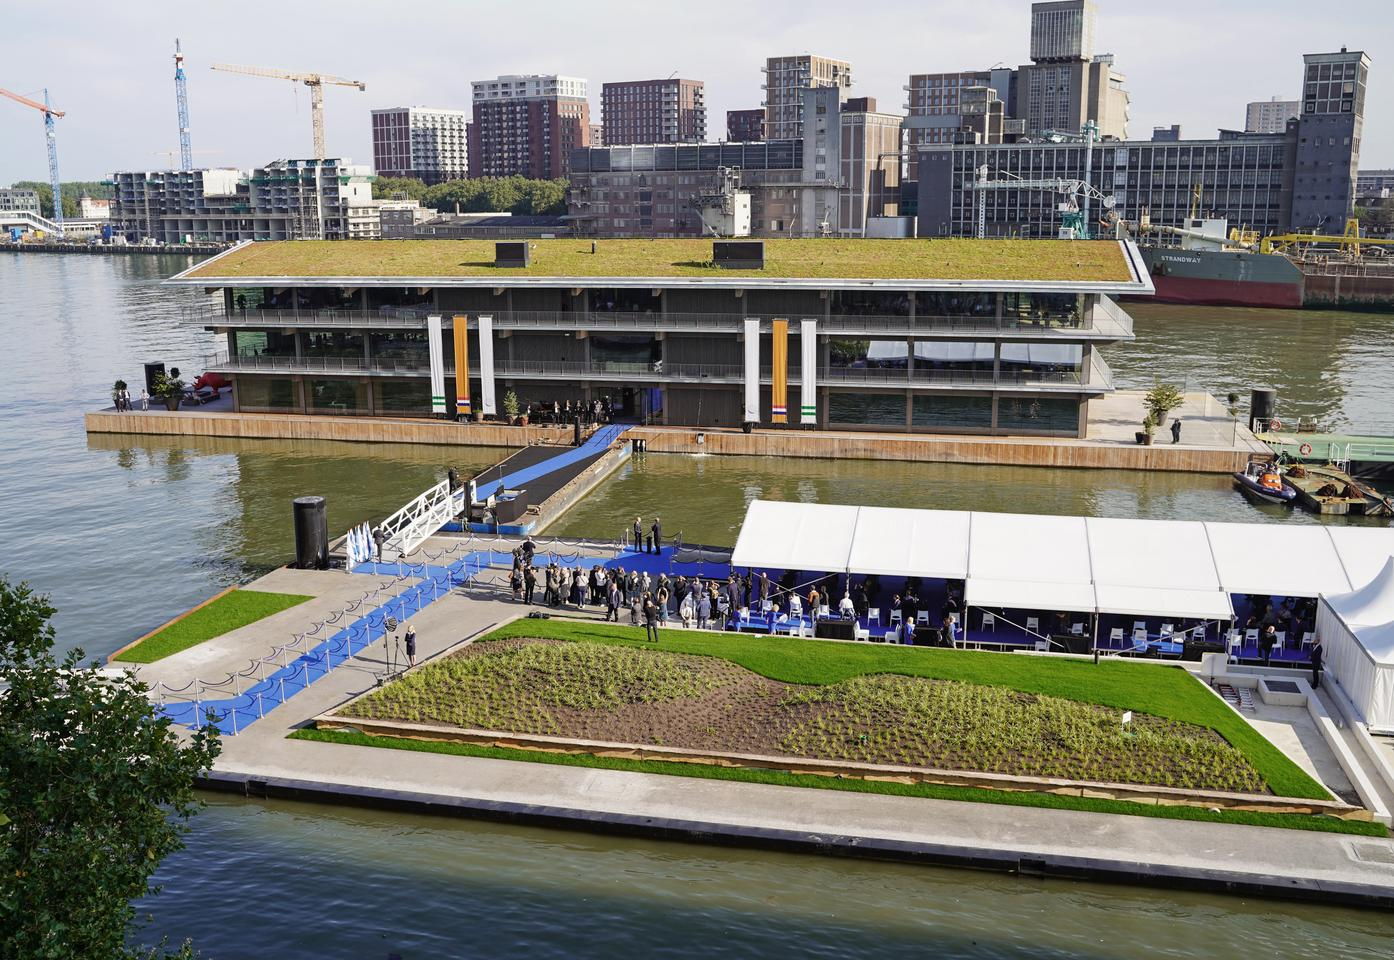 FOR is located in Rotterdam, the Netherlands, and is part of an ongoing redevelopment of the Rijnhaven harbor